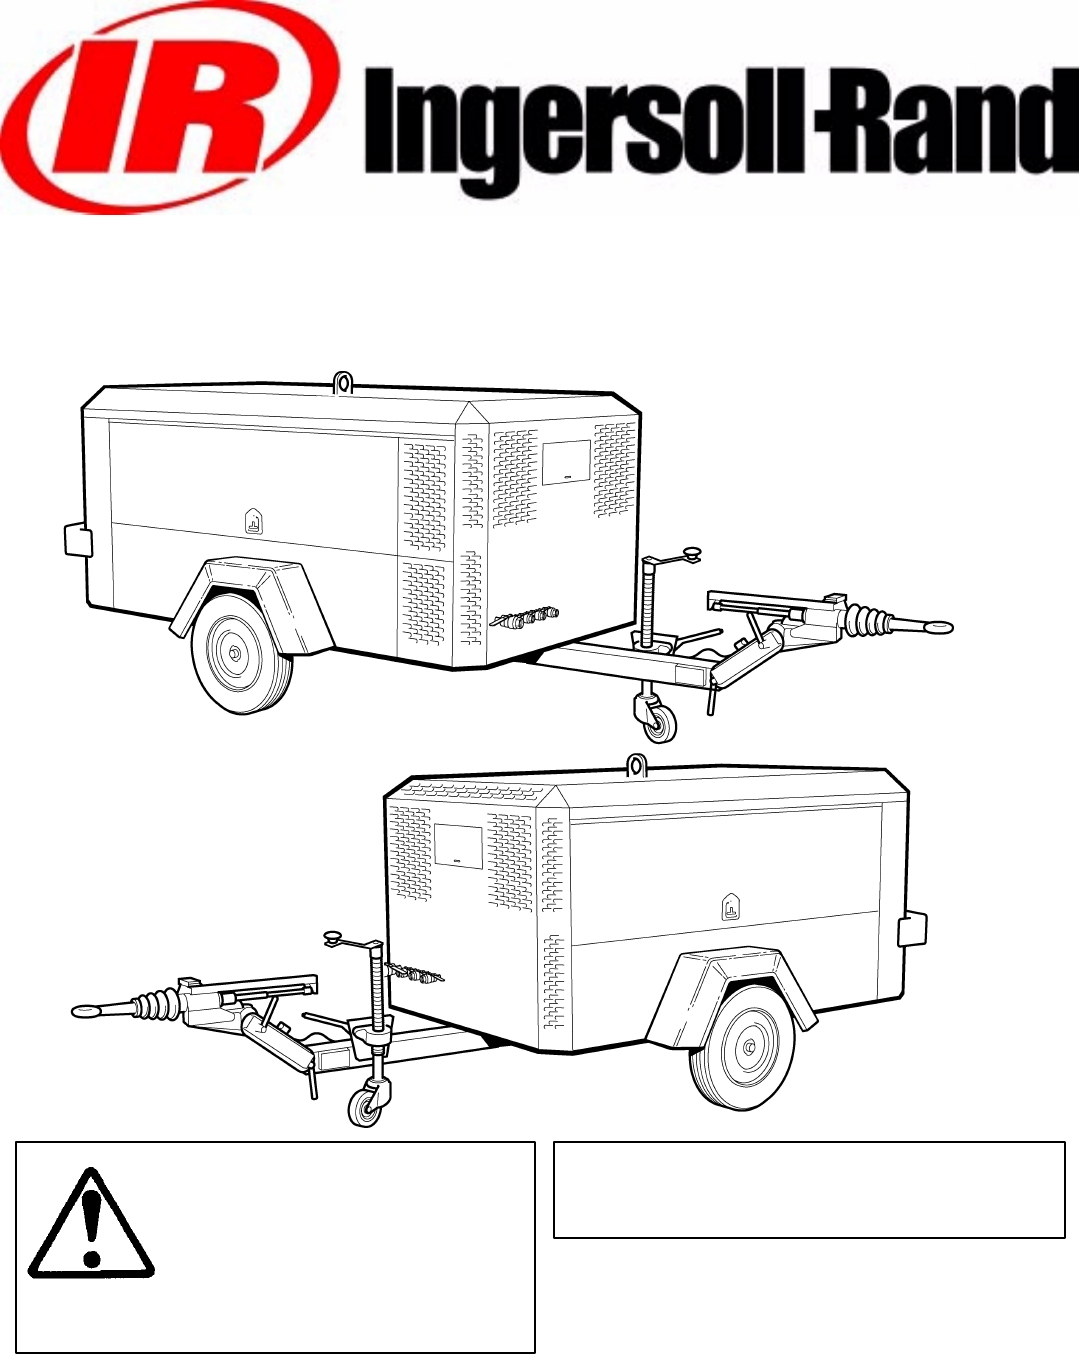 Ingersoll-Rand Air Compressor 7120 User Guide | Manualsonline with Ingersoll Rand Air Compressor Parts Diagram